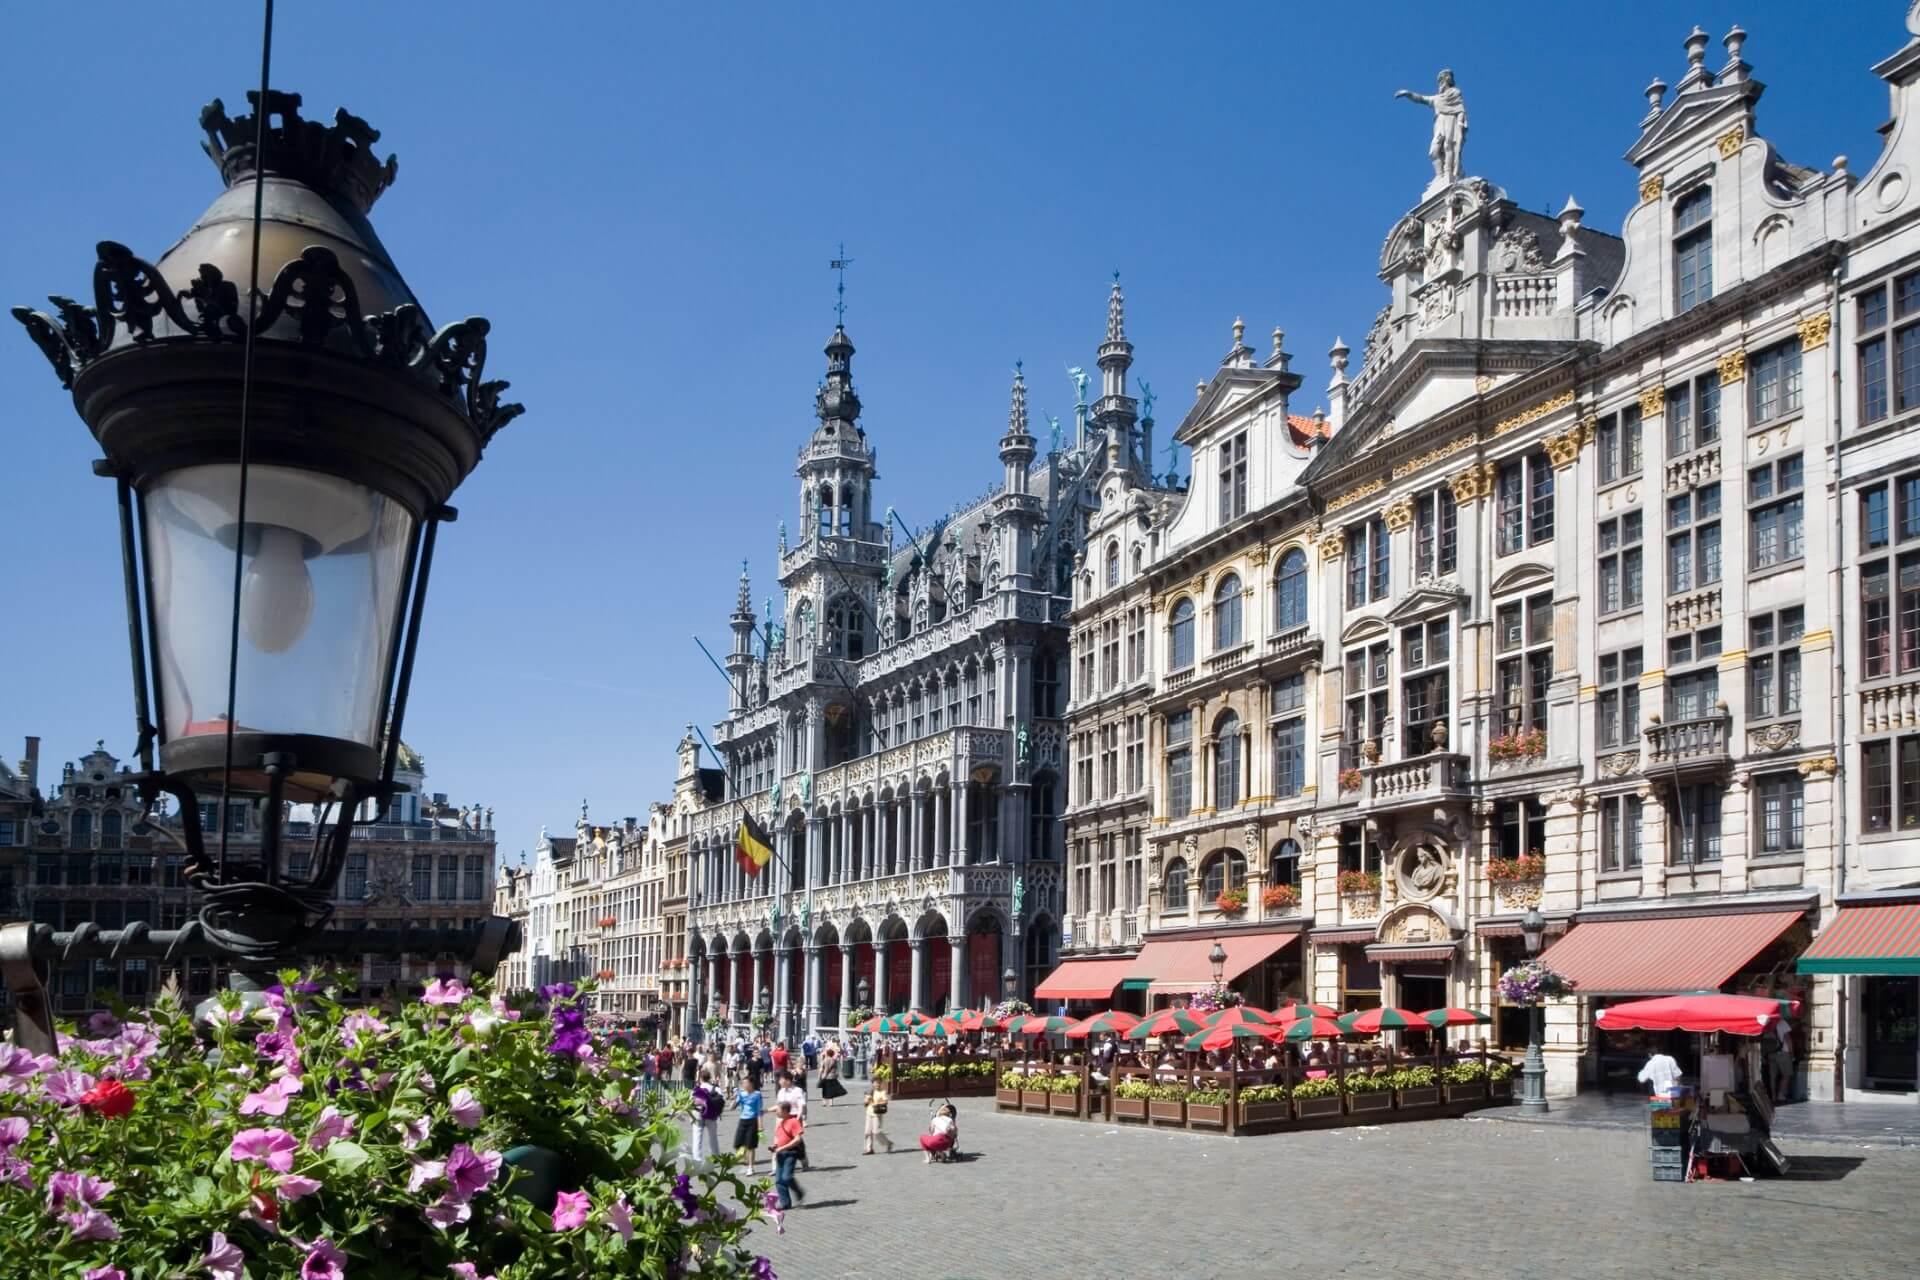 The Grand Palace (Grote Markt)